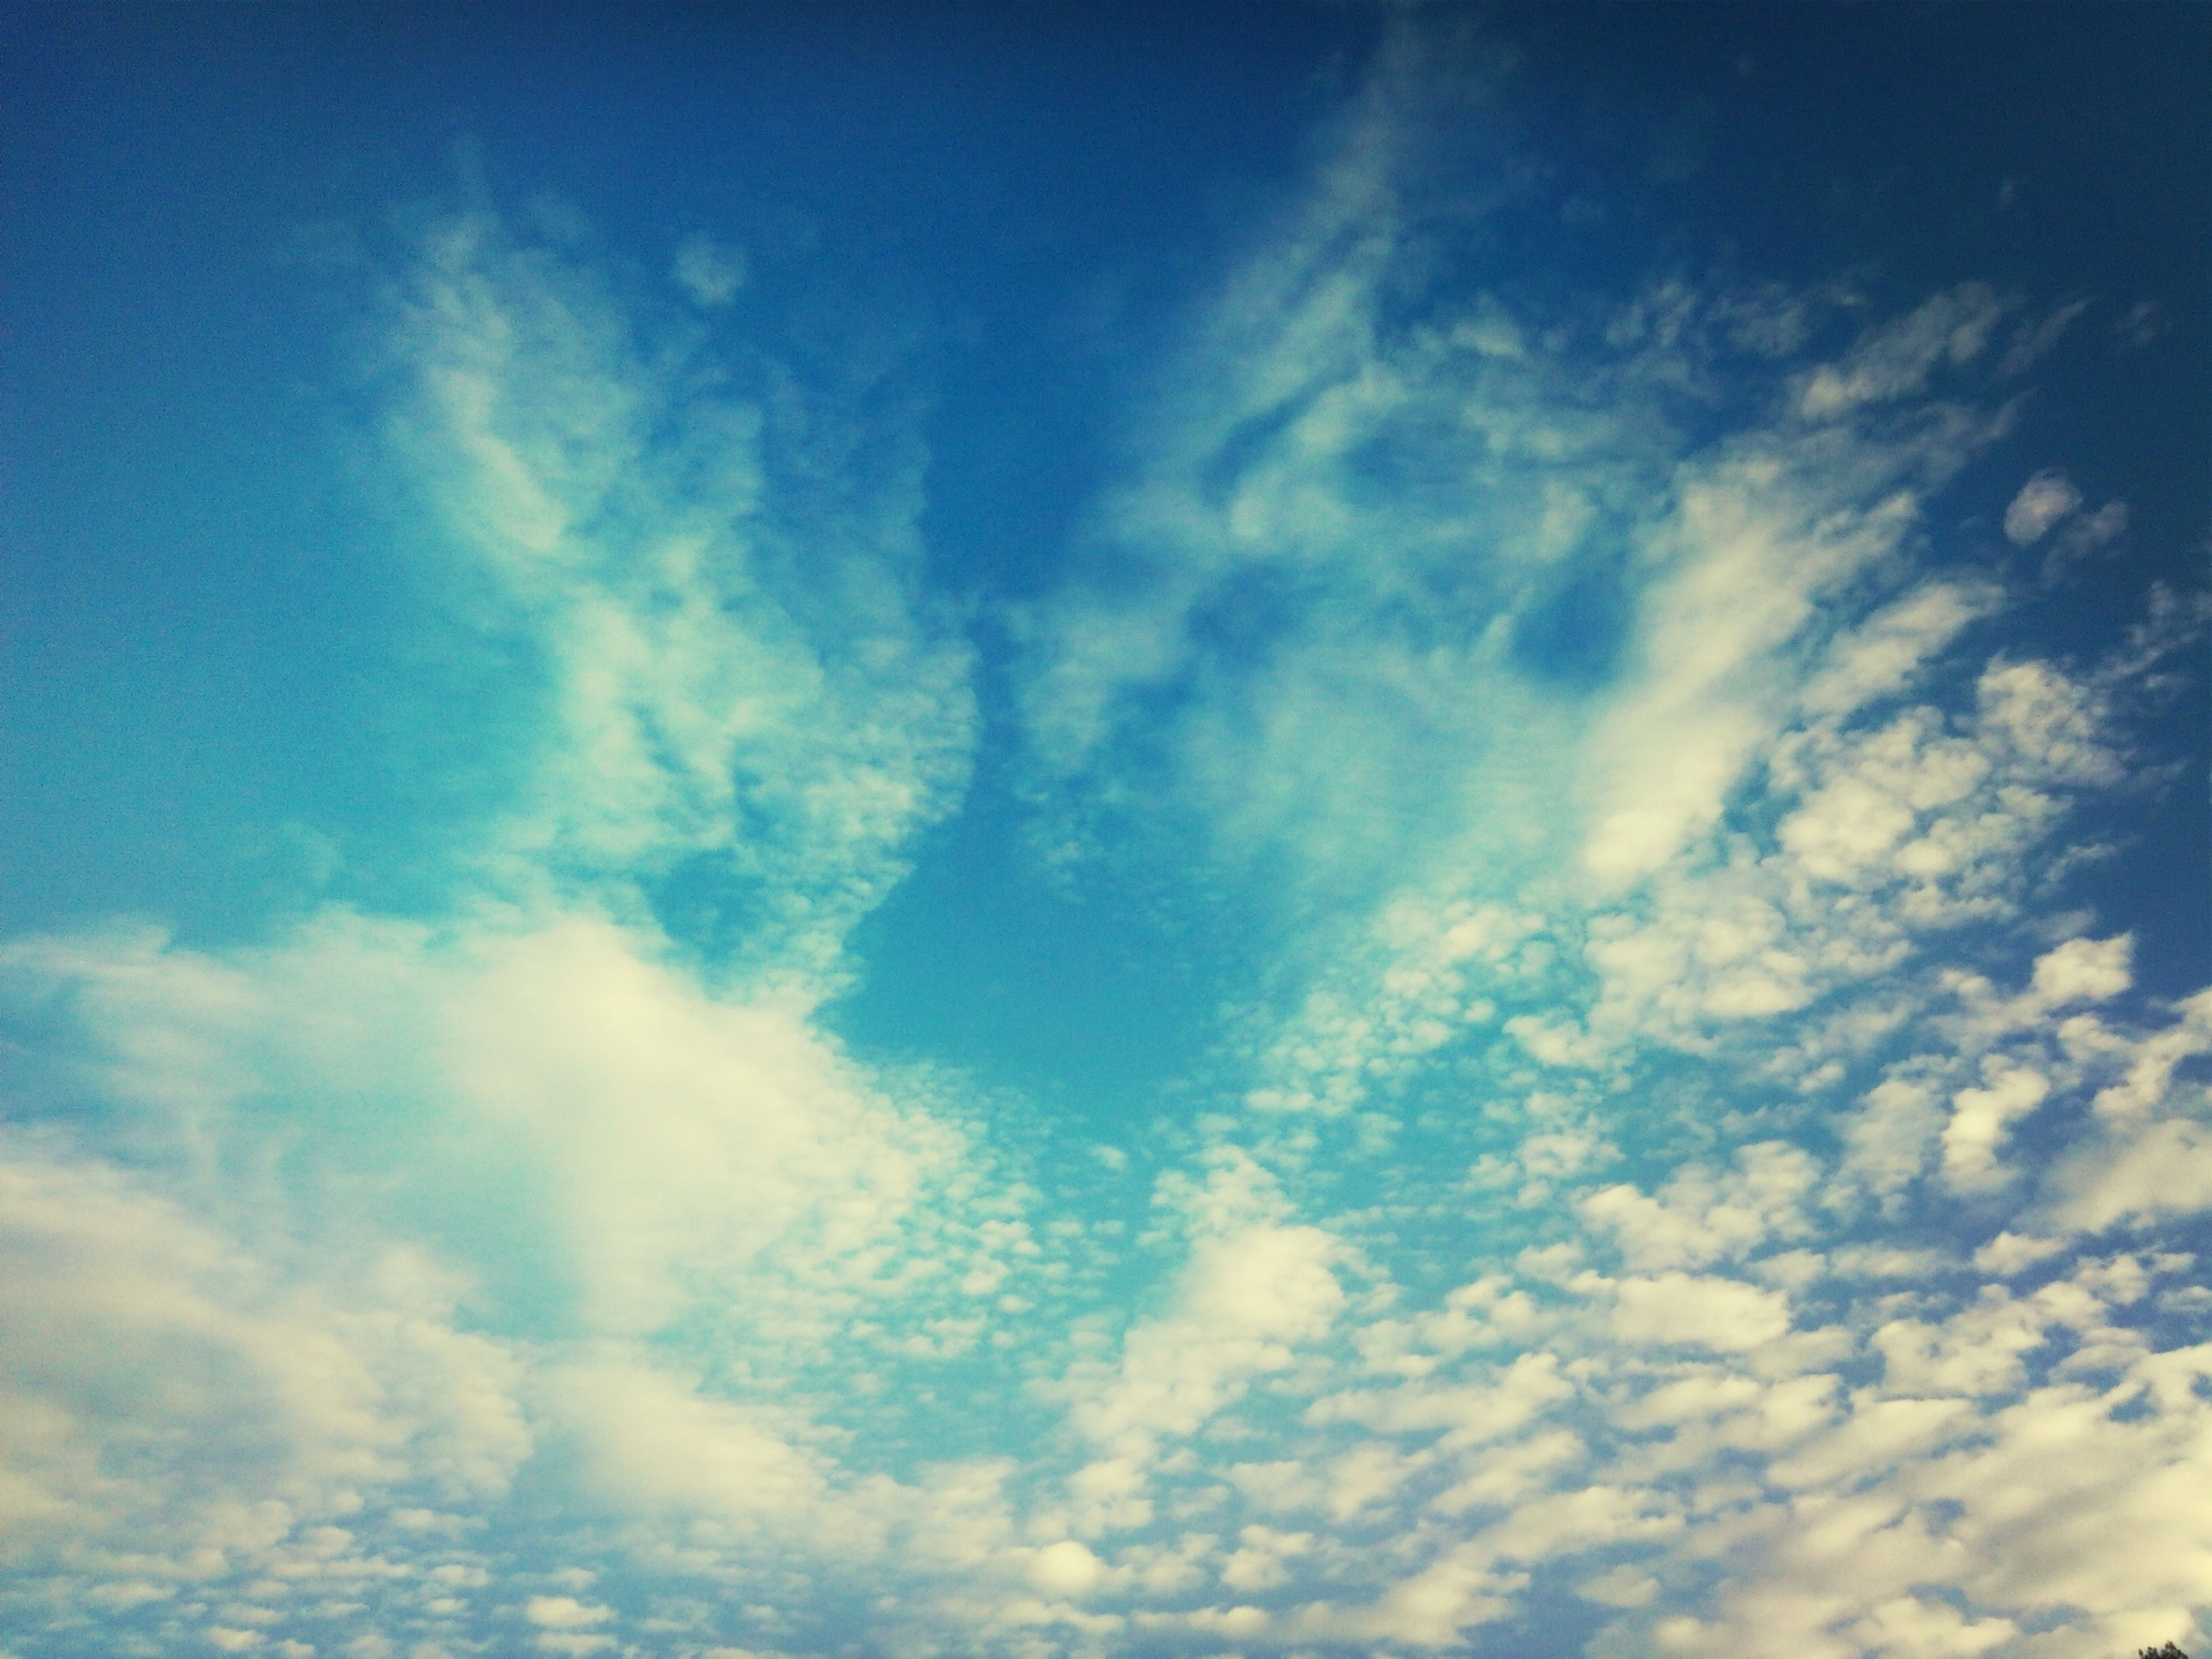 low angle view, sky, blue, cloud - sky, sky only, beauty in nature, tranquility, scenics, nature, tranquil scene, cloud, backgrounds, cloudscape, cloudy, idyllic, outdoors, full frame, no people, day, majestic